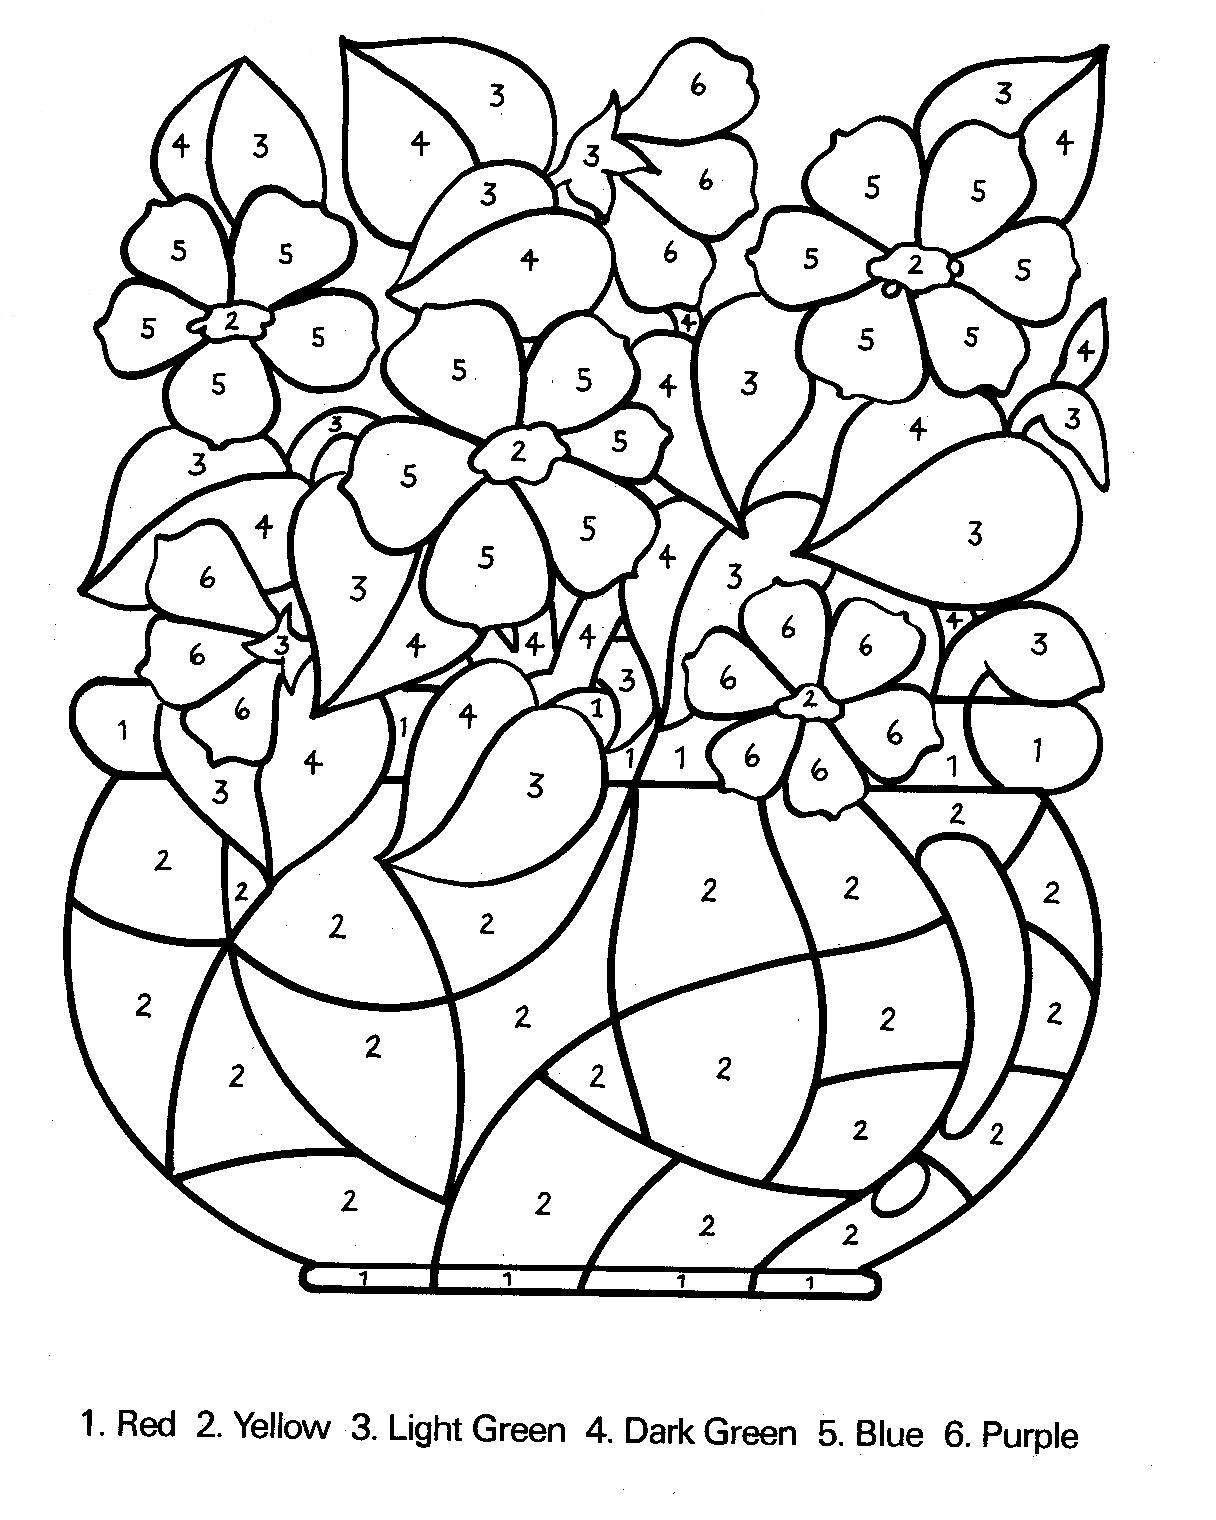 number flowers coloring sheets digg stumbleupon delicious twitter technorati